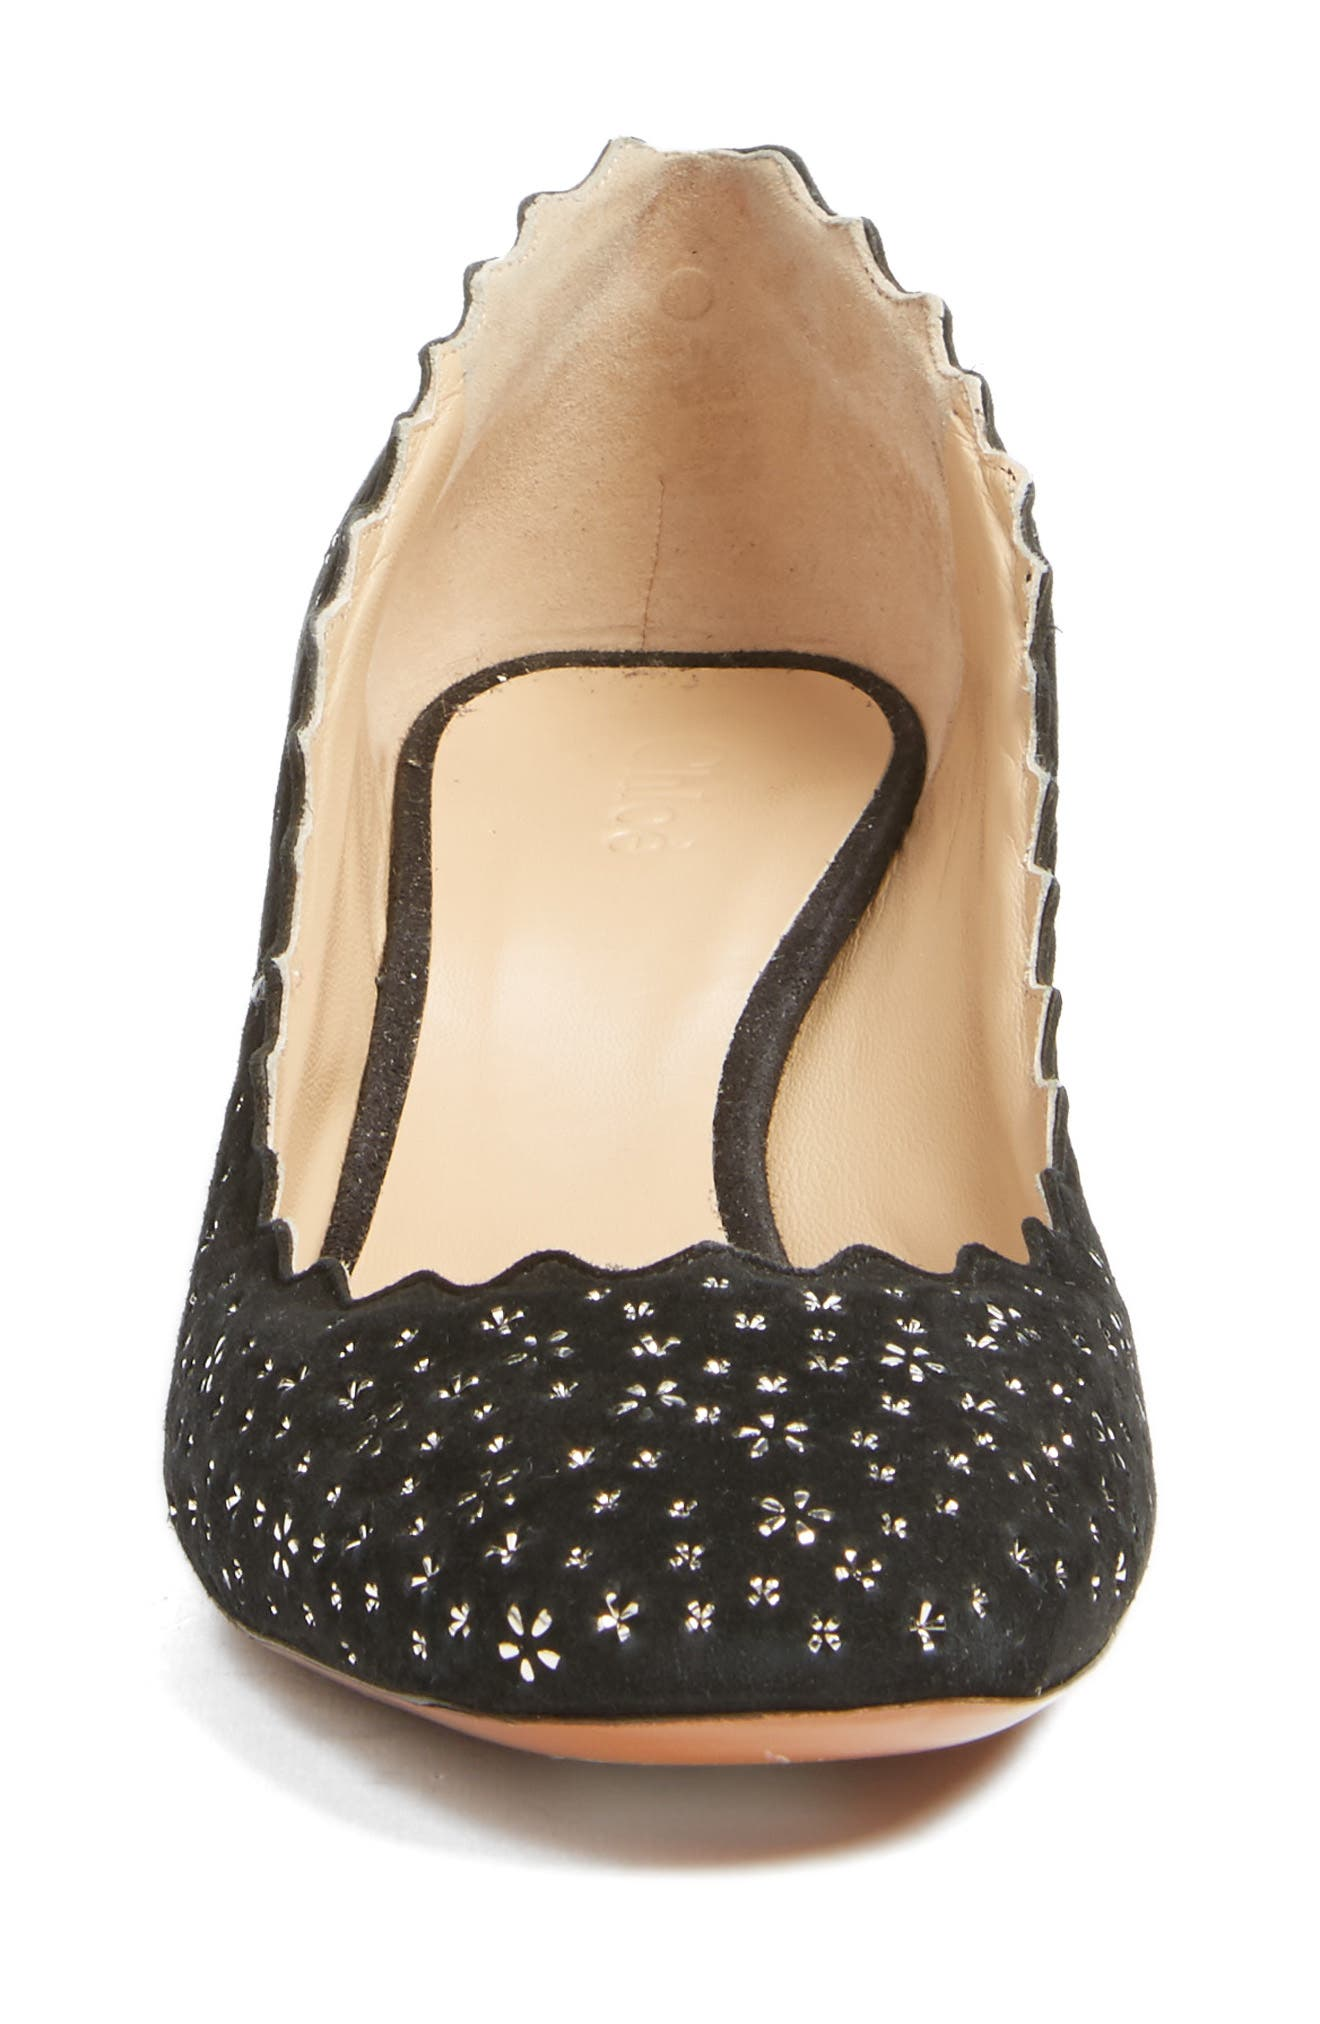 Lauren Scalloped Pump,                             Alternate thumbnail 4, color,                             Black Floral